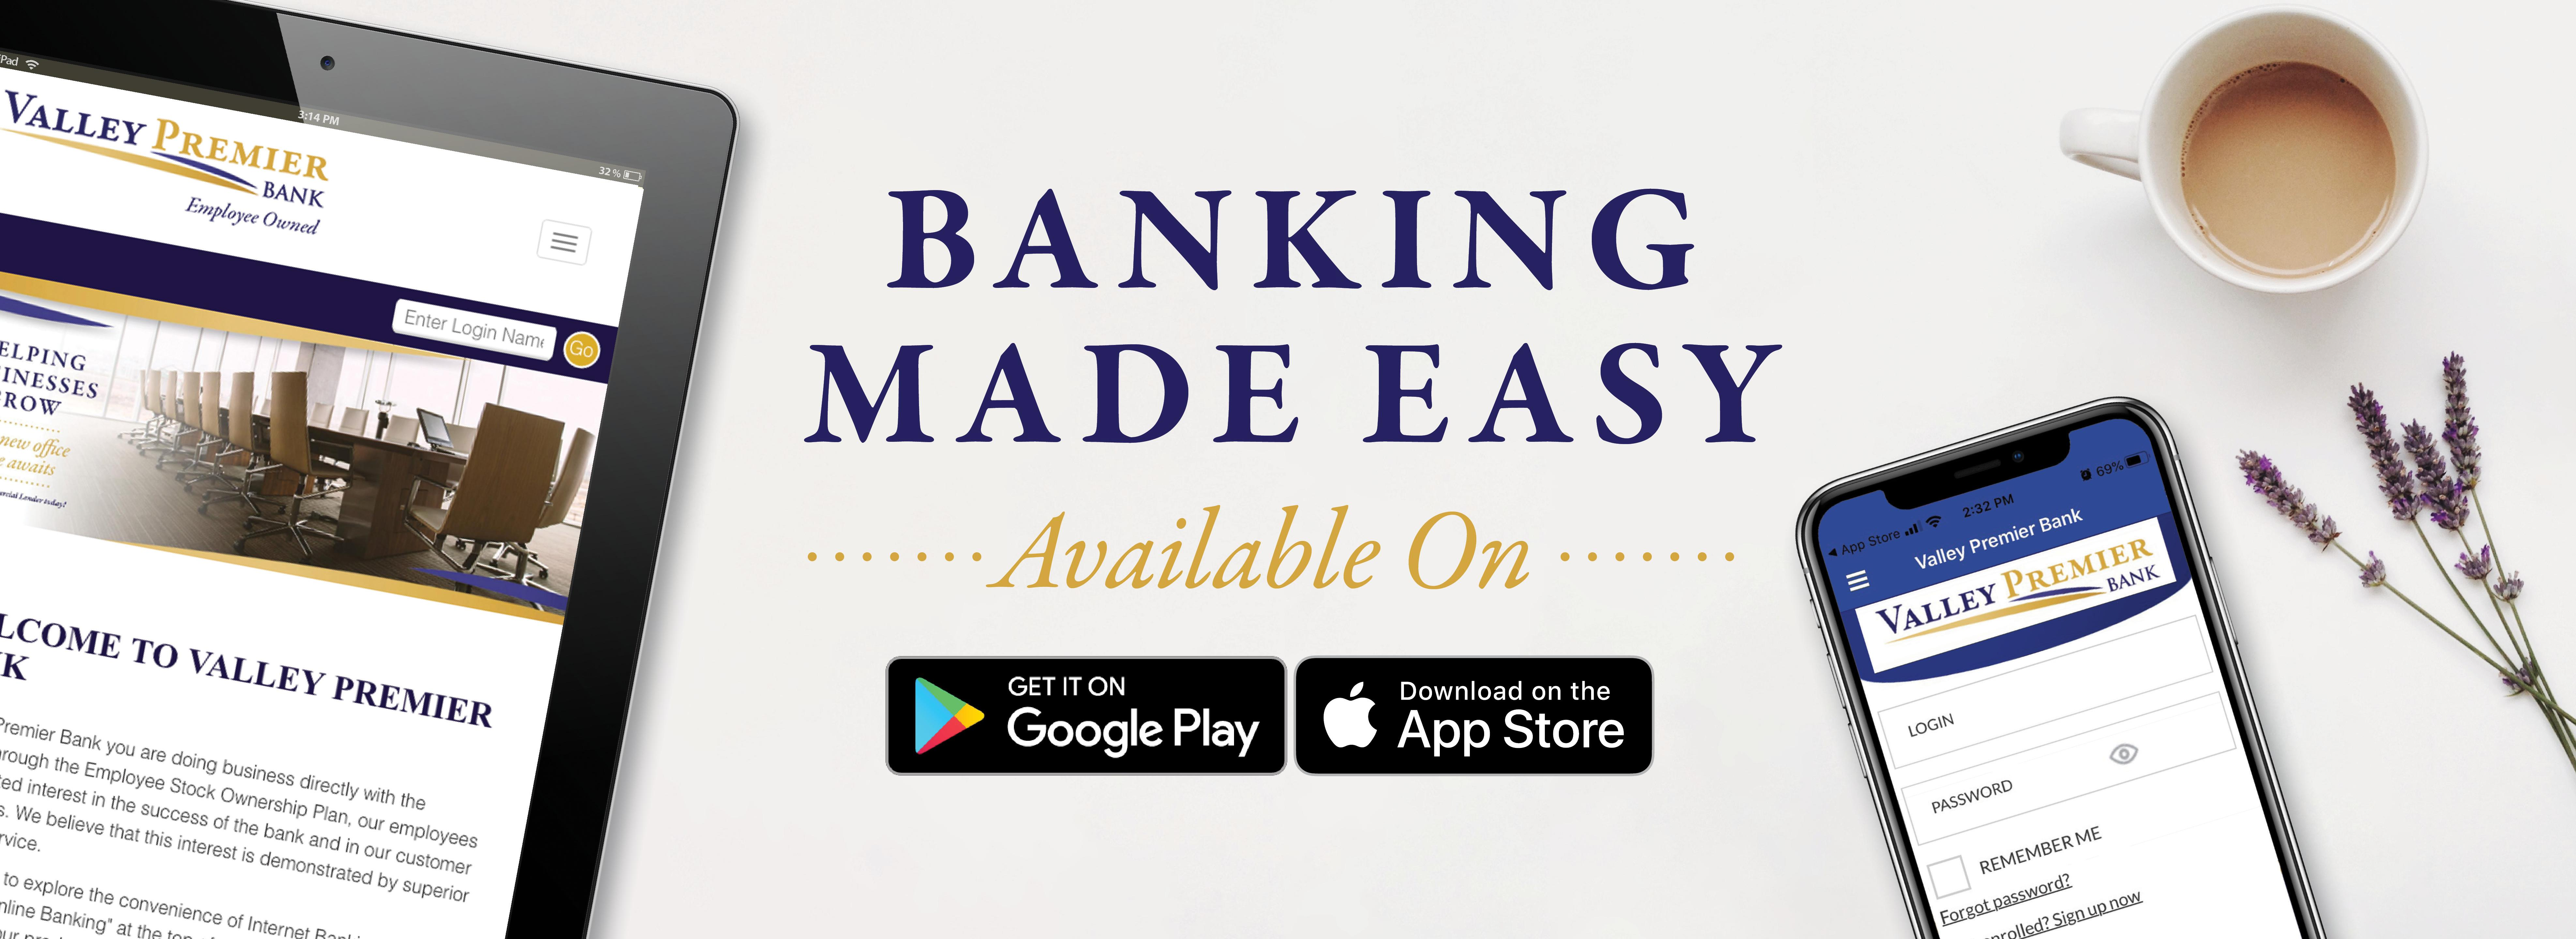 Banking Made Easy, Available on Google Play and App Store with images of an iPad with our website and cell phone with our mobile app.